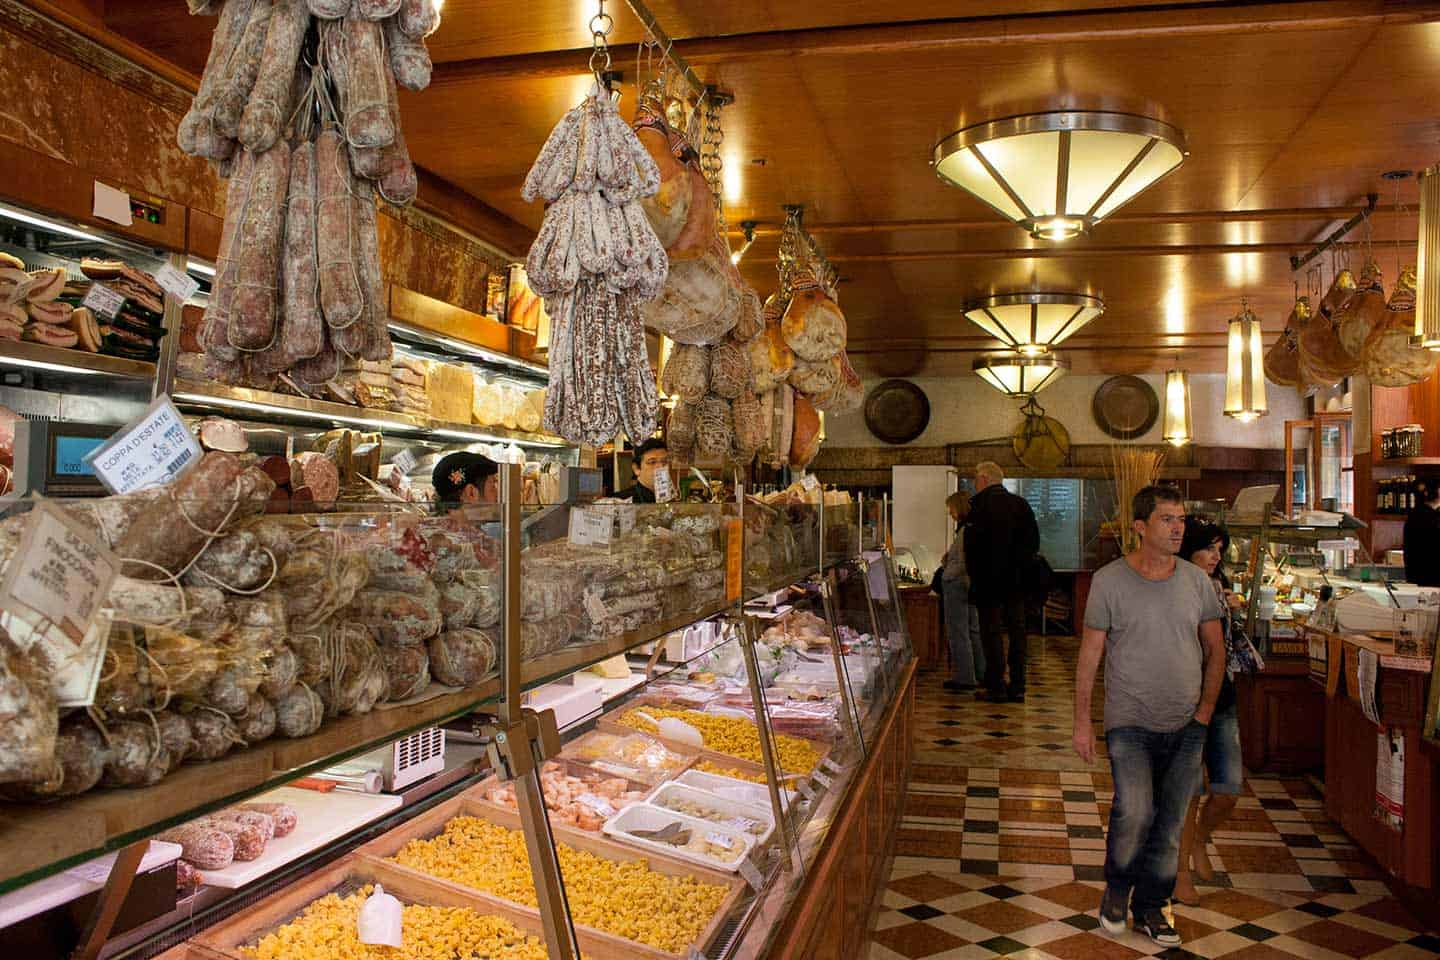 Image of Tamburini shop a traditional Italian delicatessen